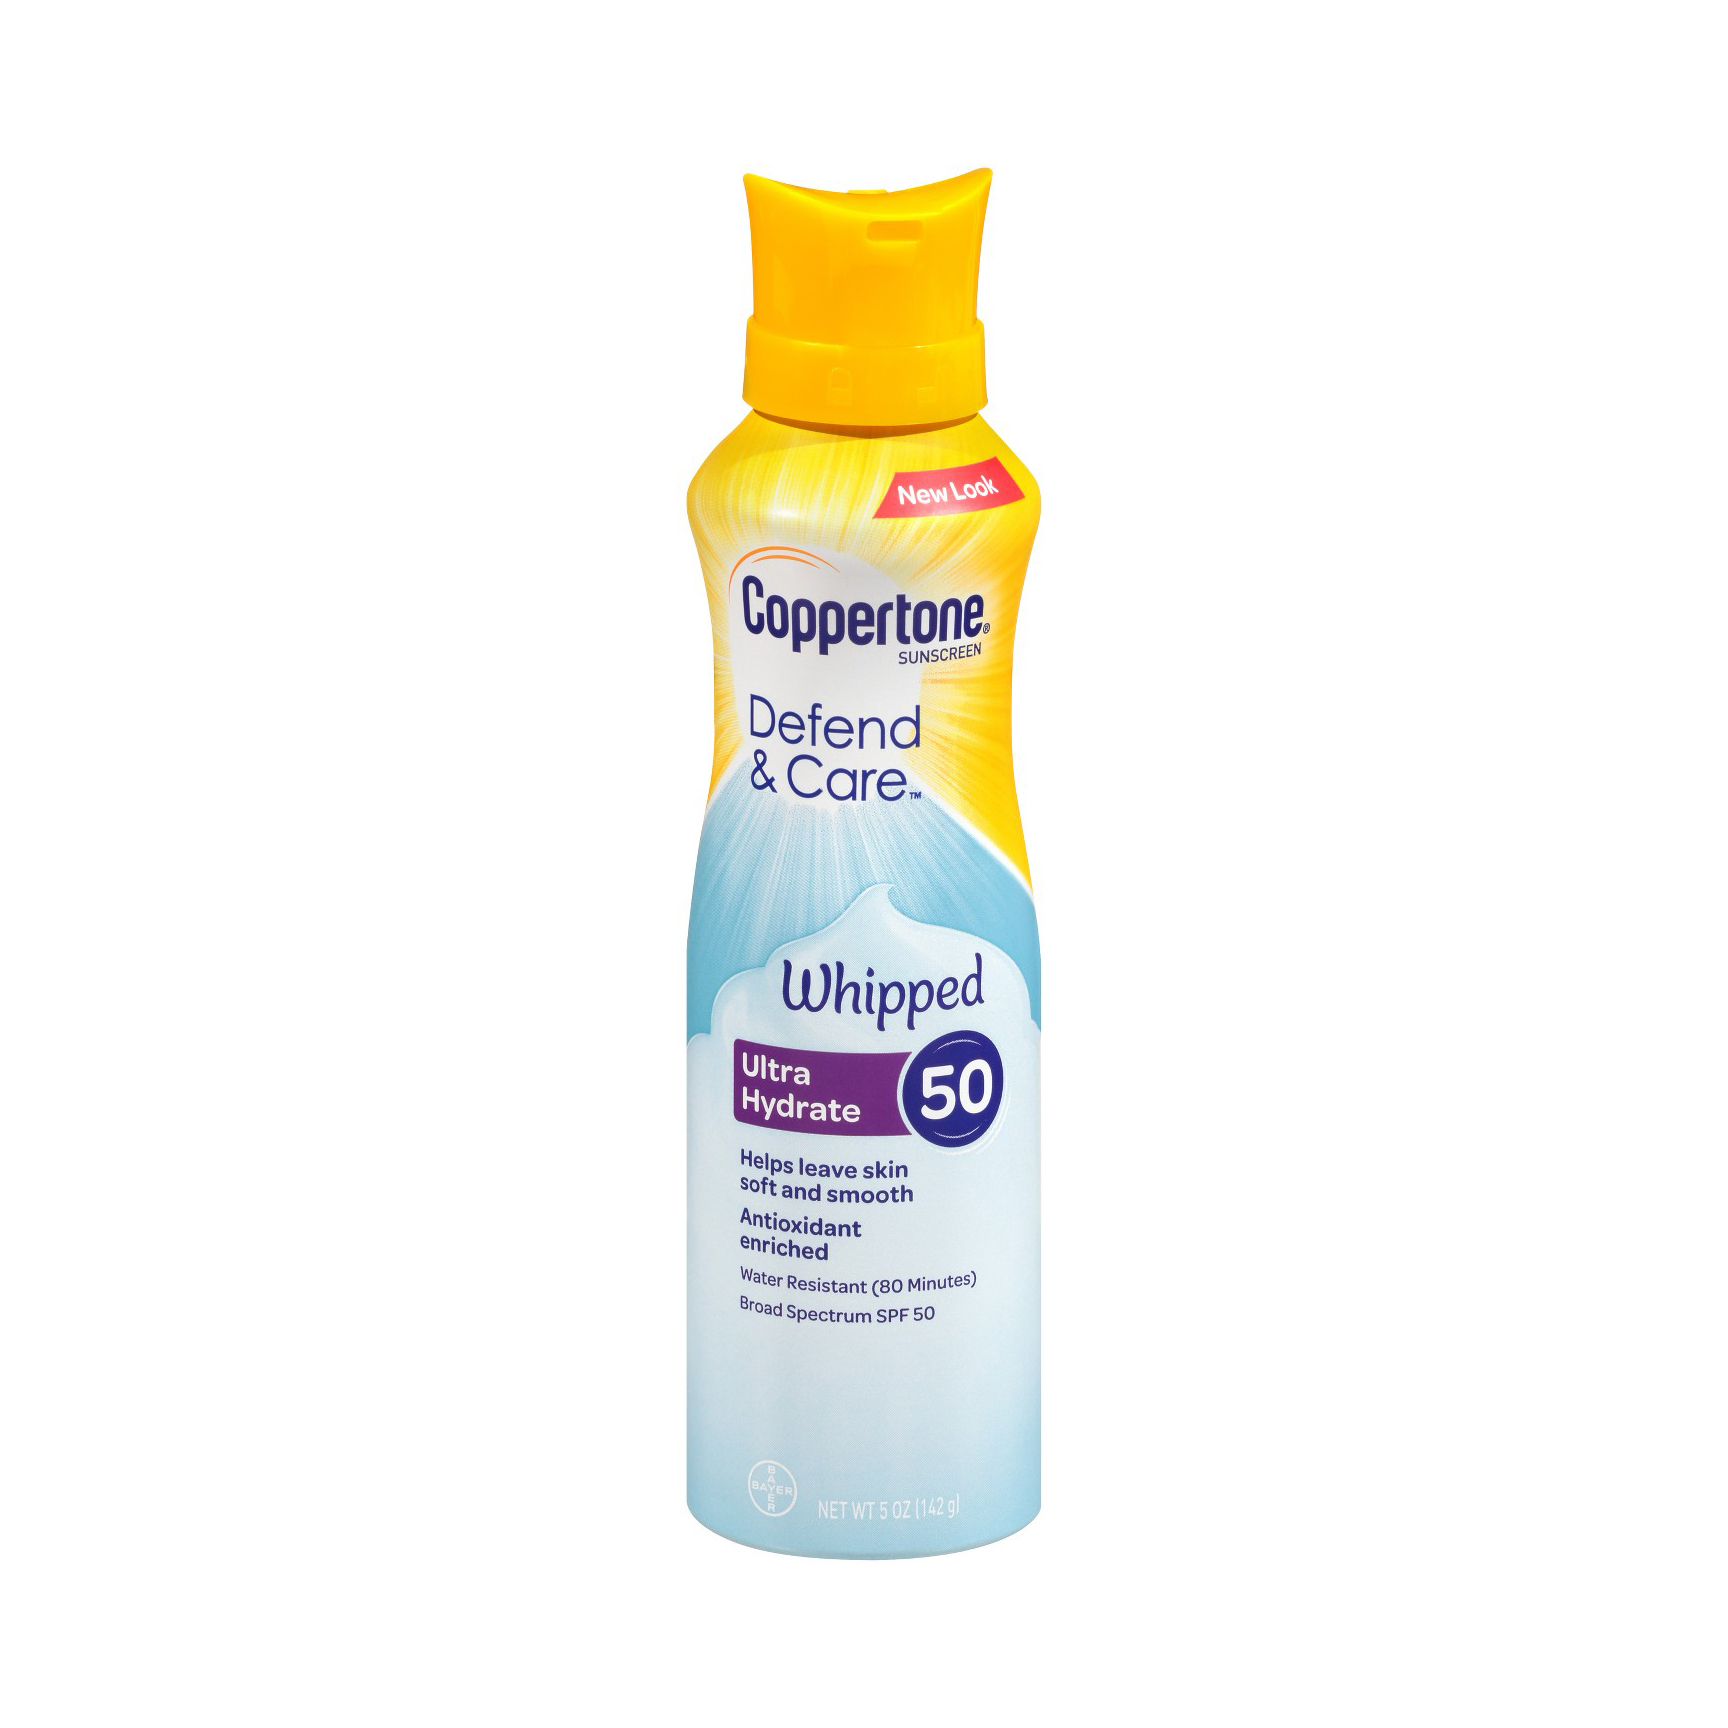 Coppertone Defend & Care UltraHydrate Whipped